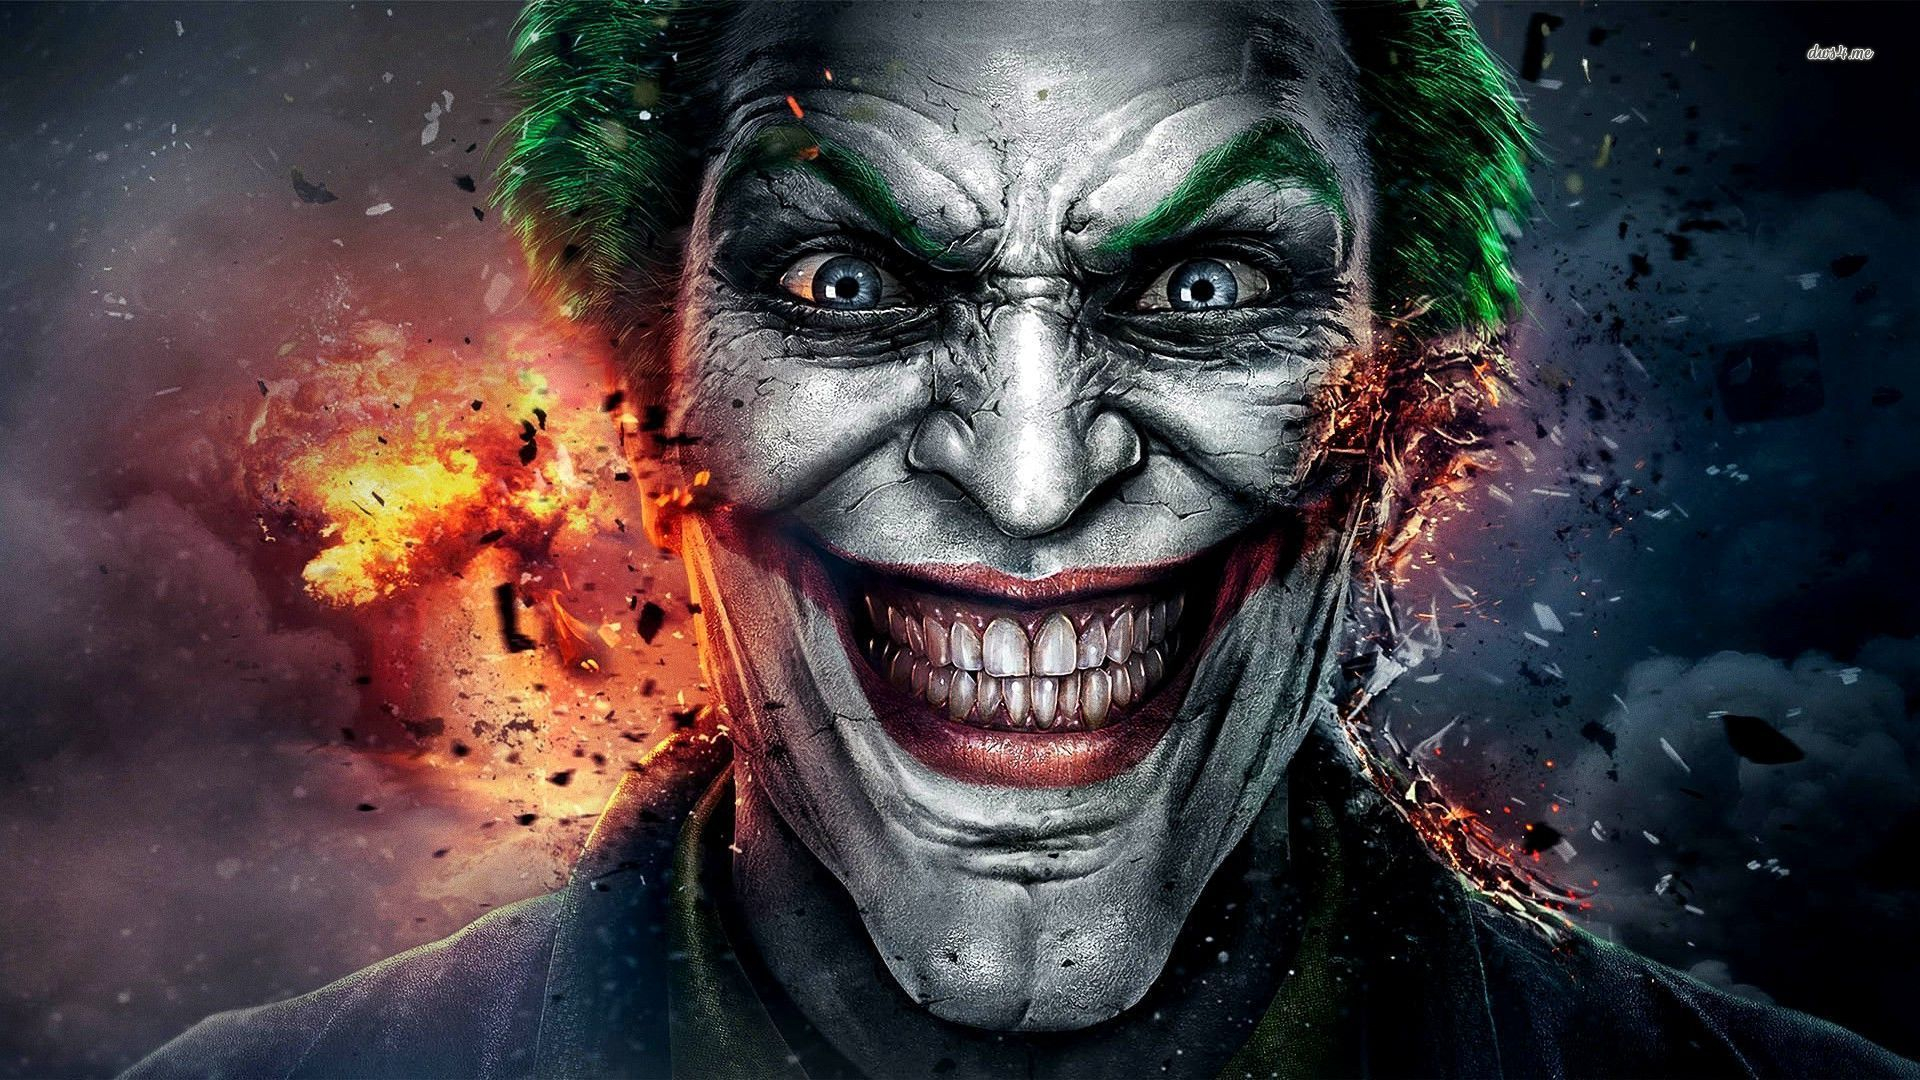 Joker 4k Ultra Hd Wallpapers Top Free Joker 4k Ultra Hd Backgrounds Wallpaperaccess